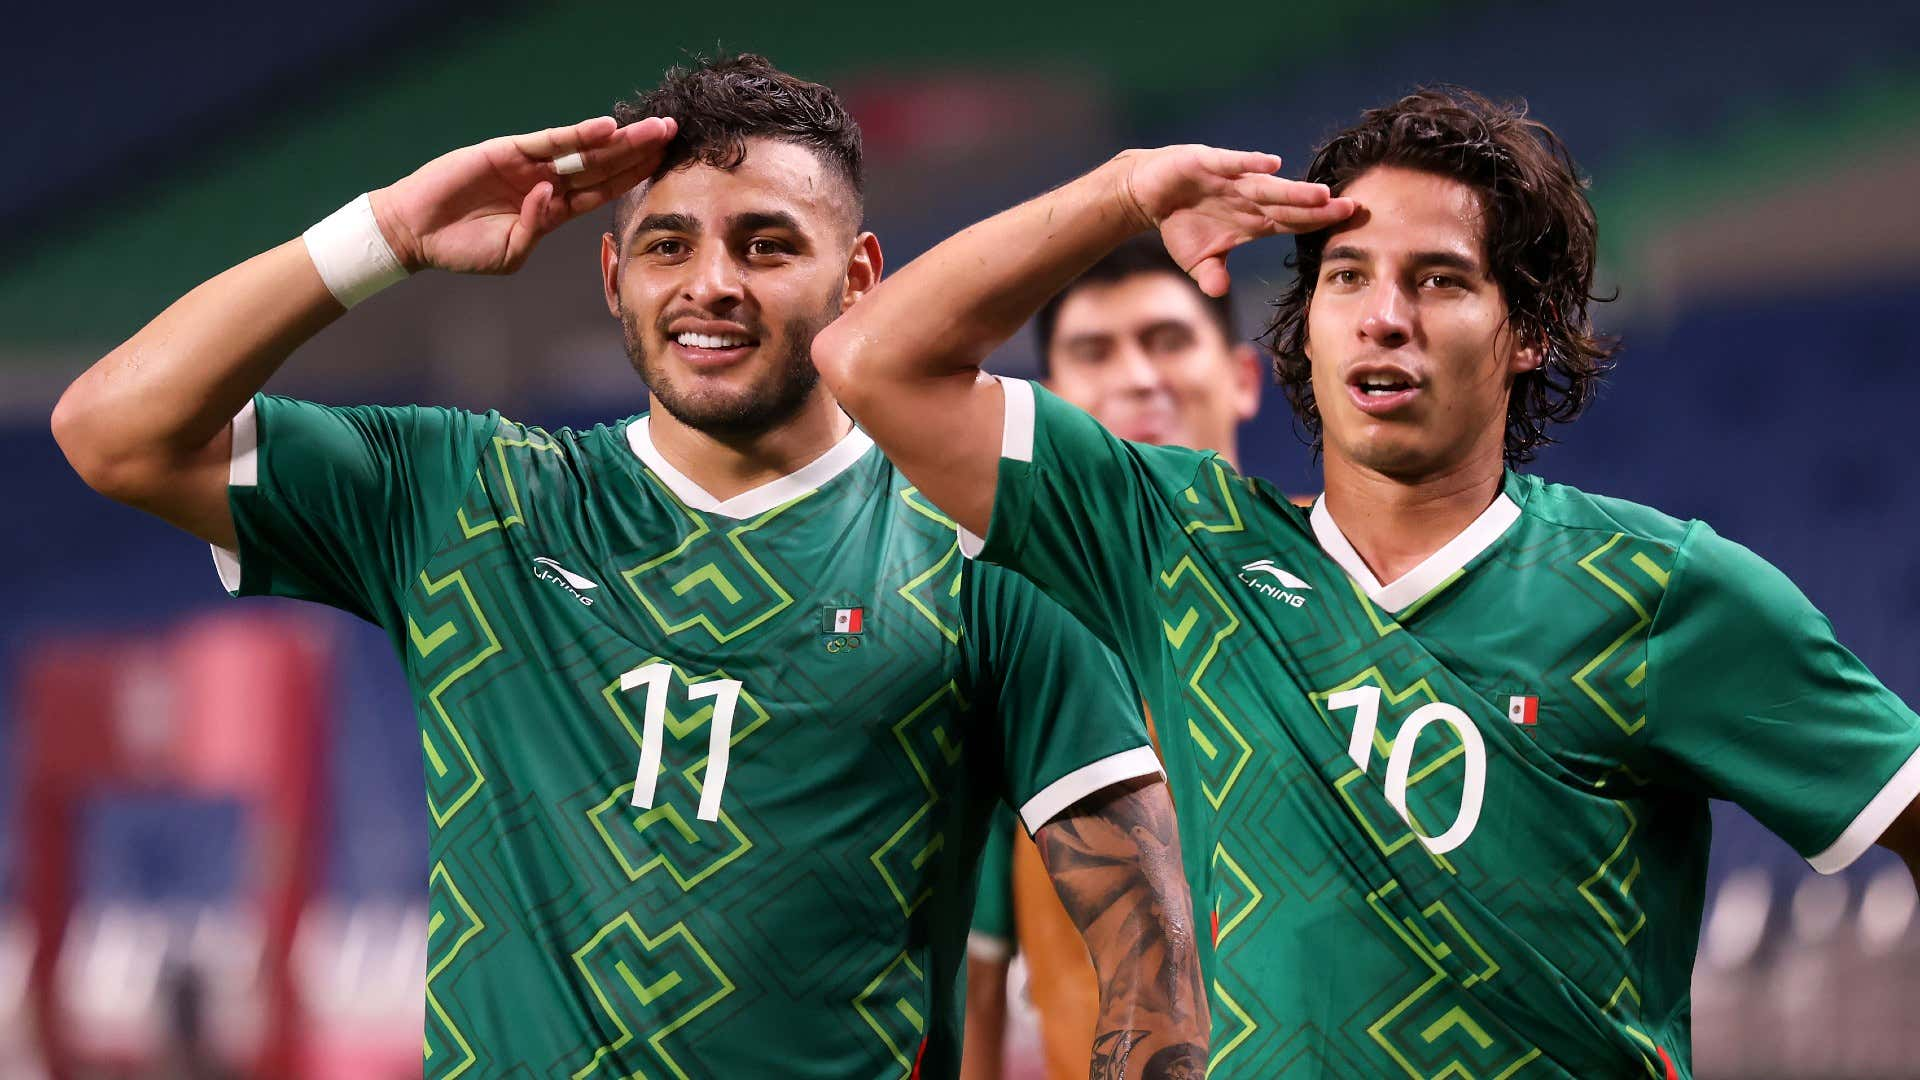 Mexico World Cup 2022 qualifying: Group, fixtures, results & everything you need to know